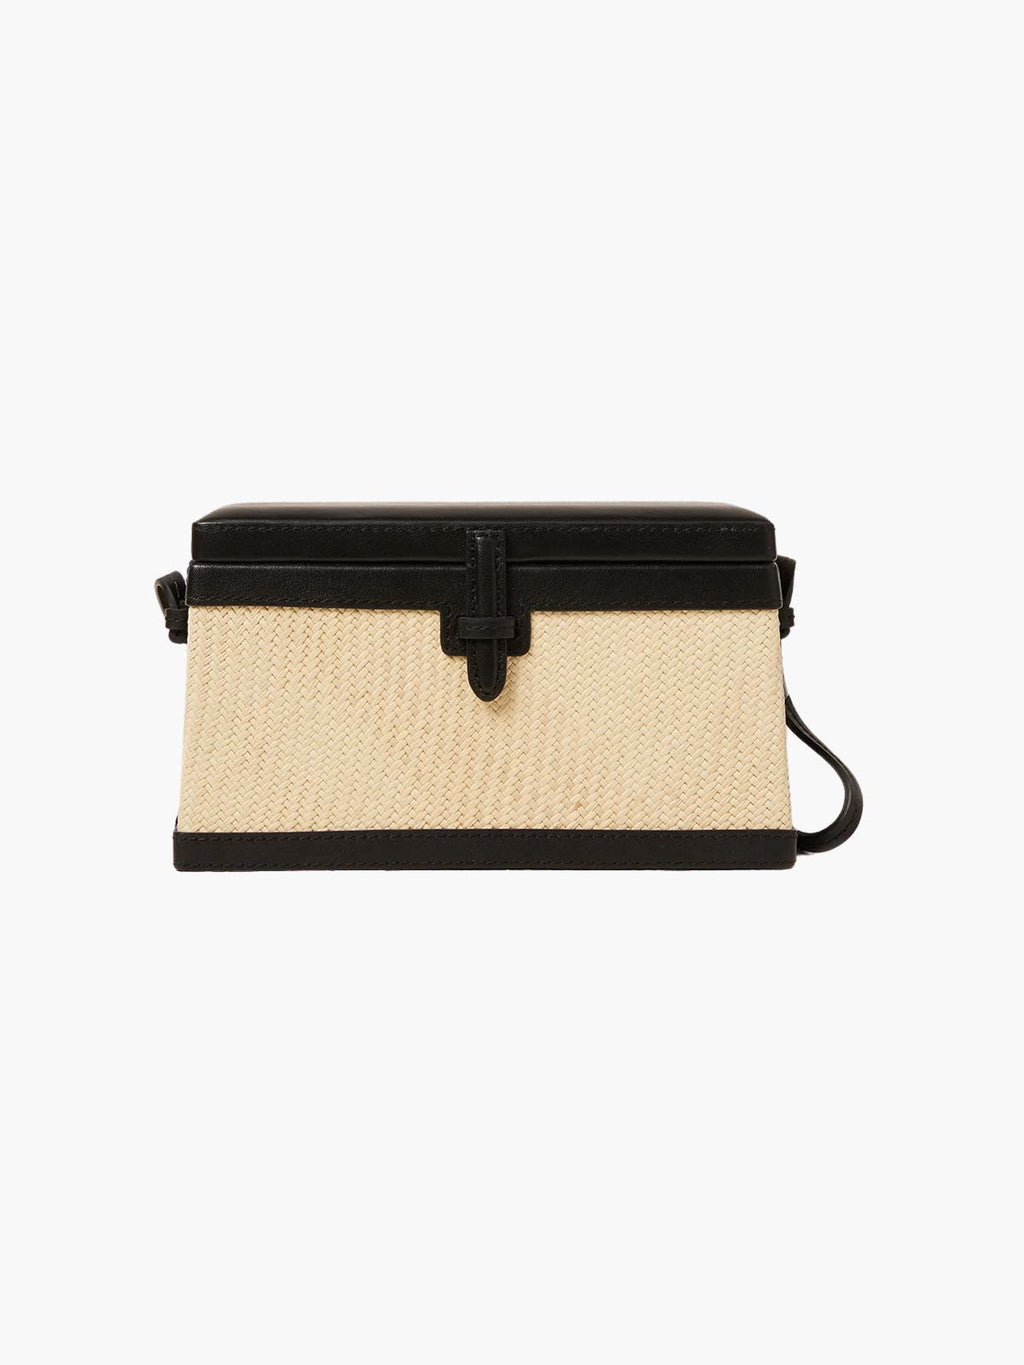 Square Trunk Bag | Black Iraca